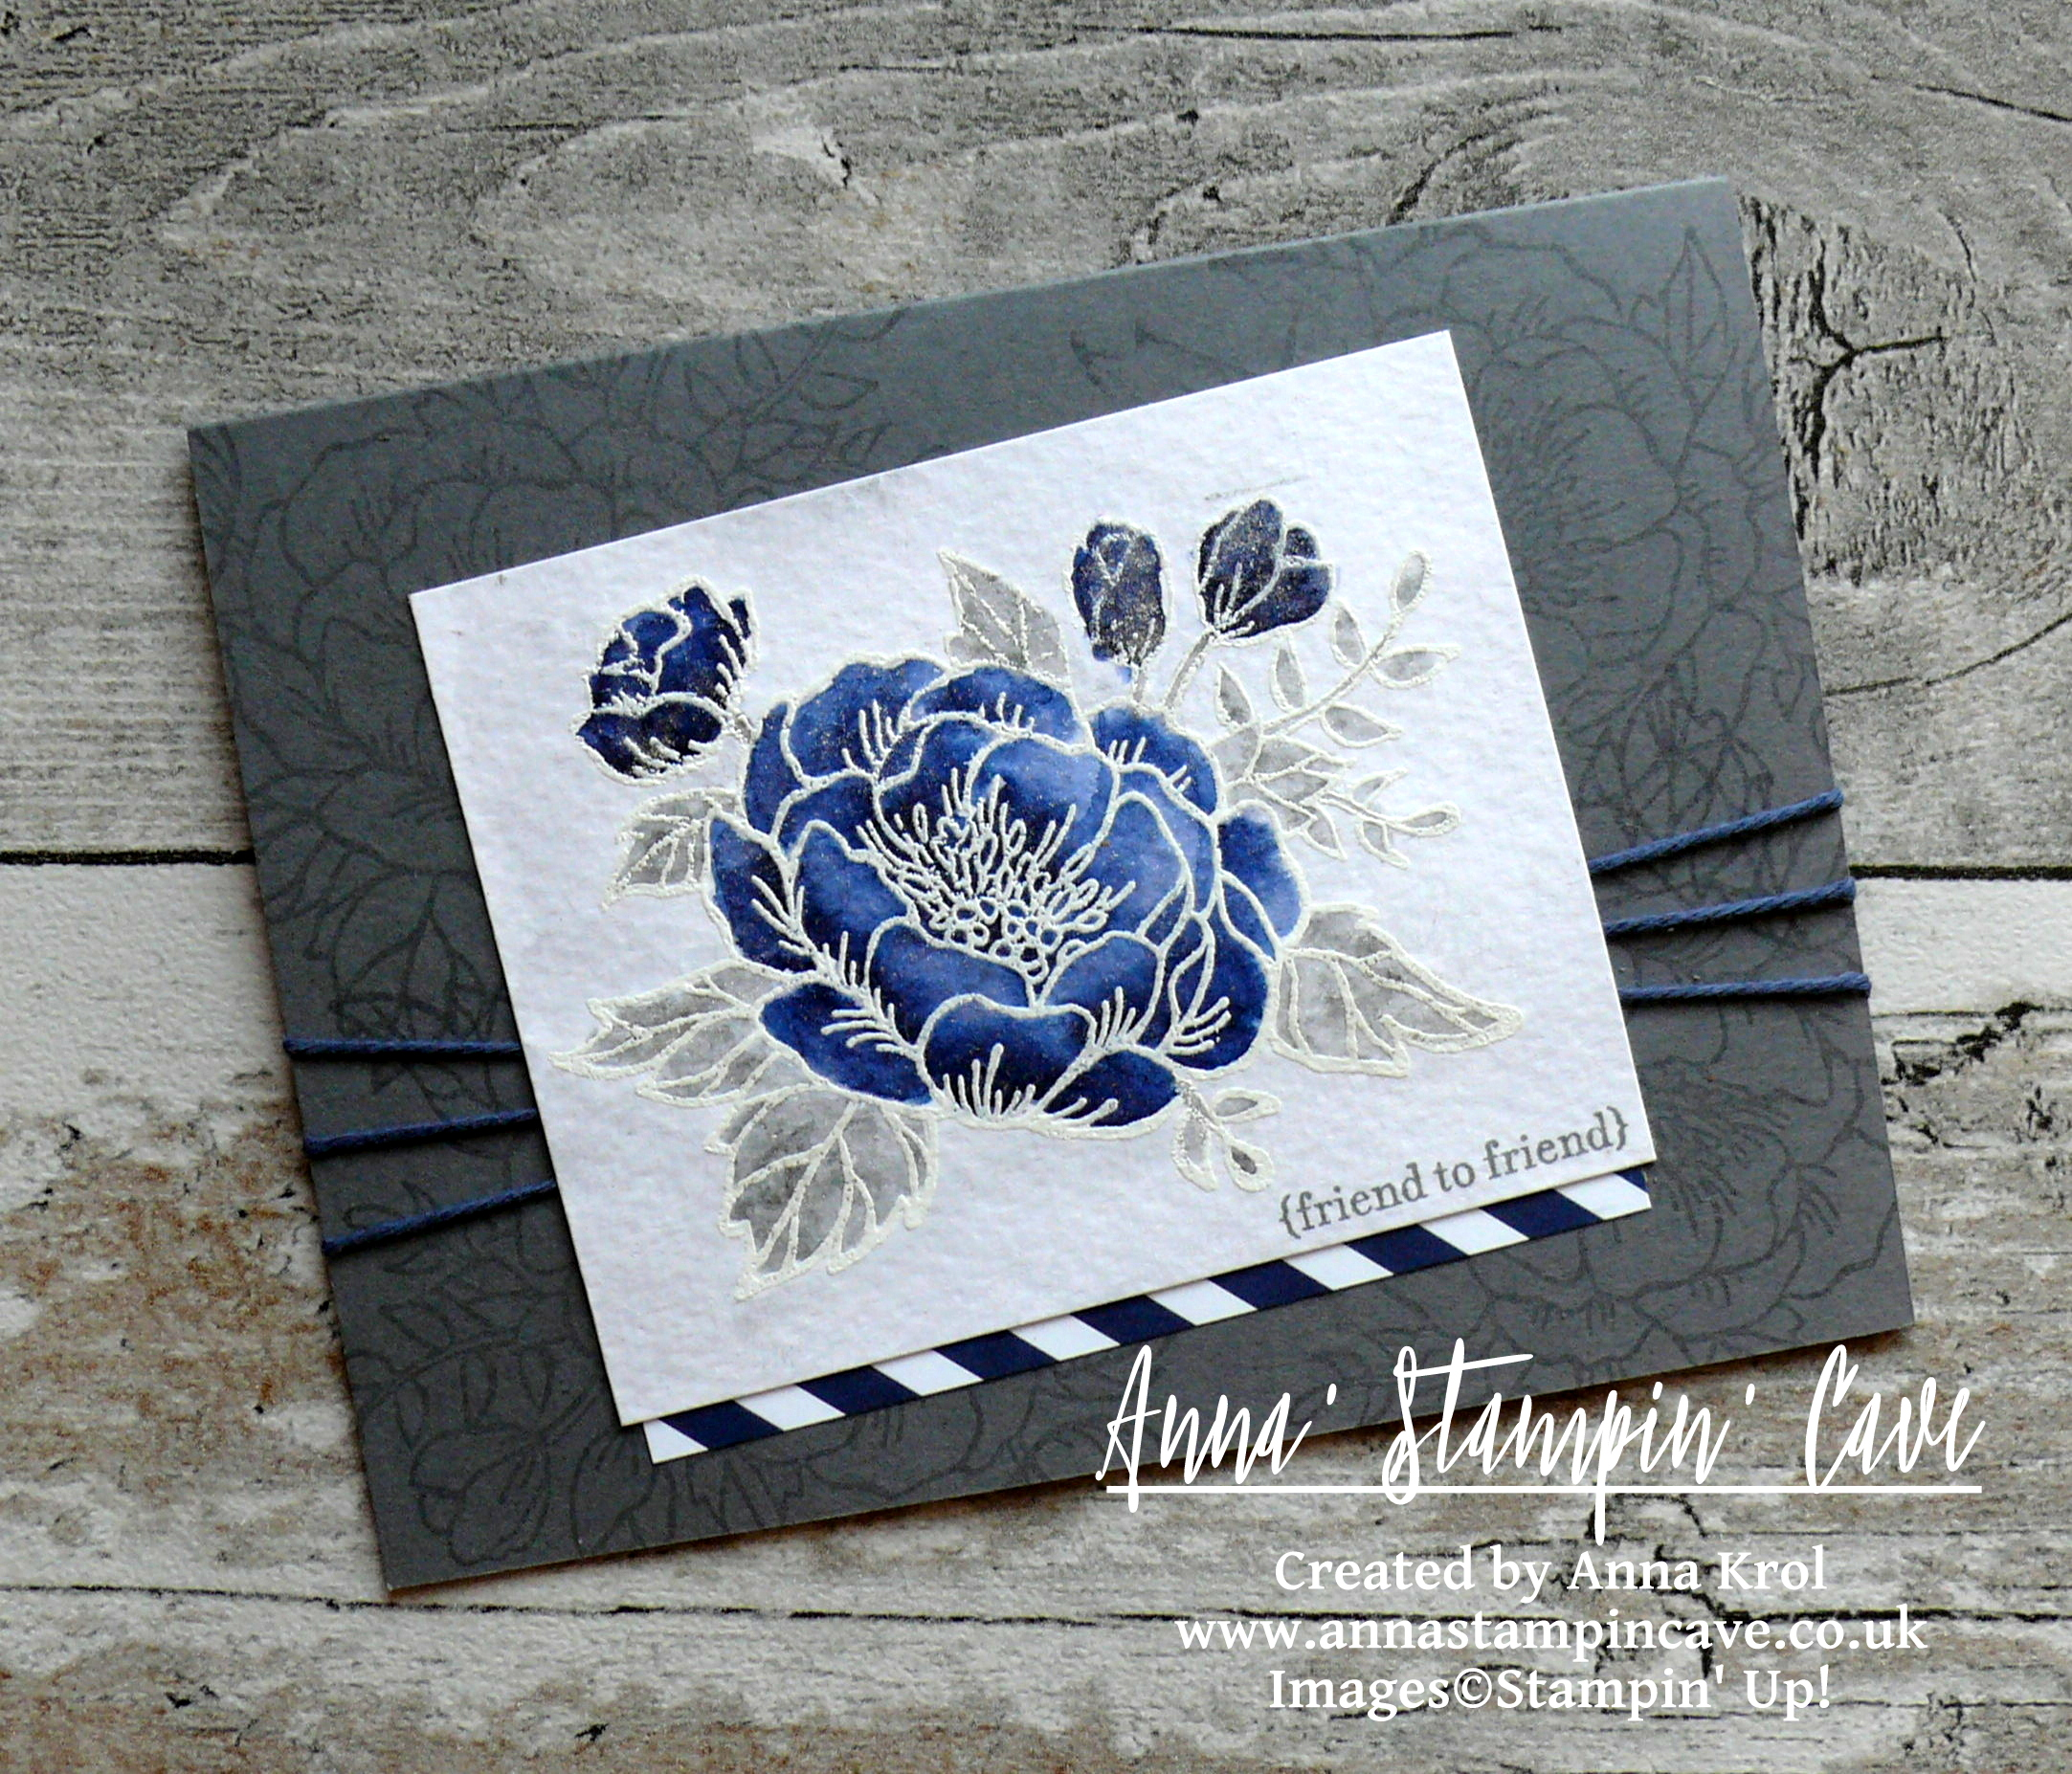 Anna' Stampin' Cave_Stampin' Up! Birthday Blooms Stamp Set_Watercolour Card_Basic Grey Night Of Navy 2.JPG